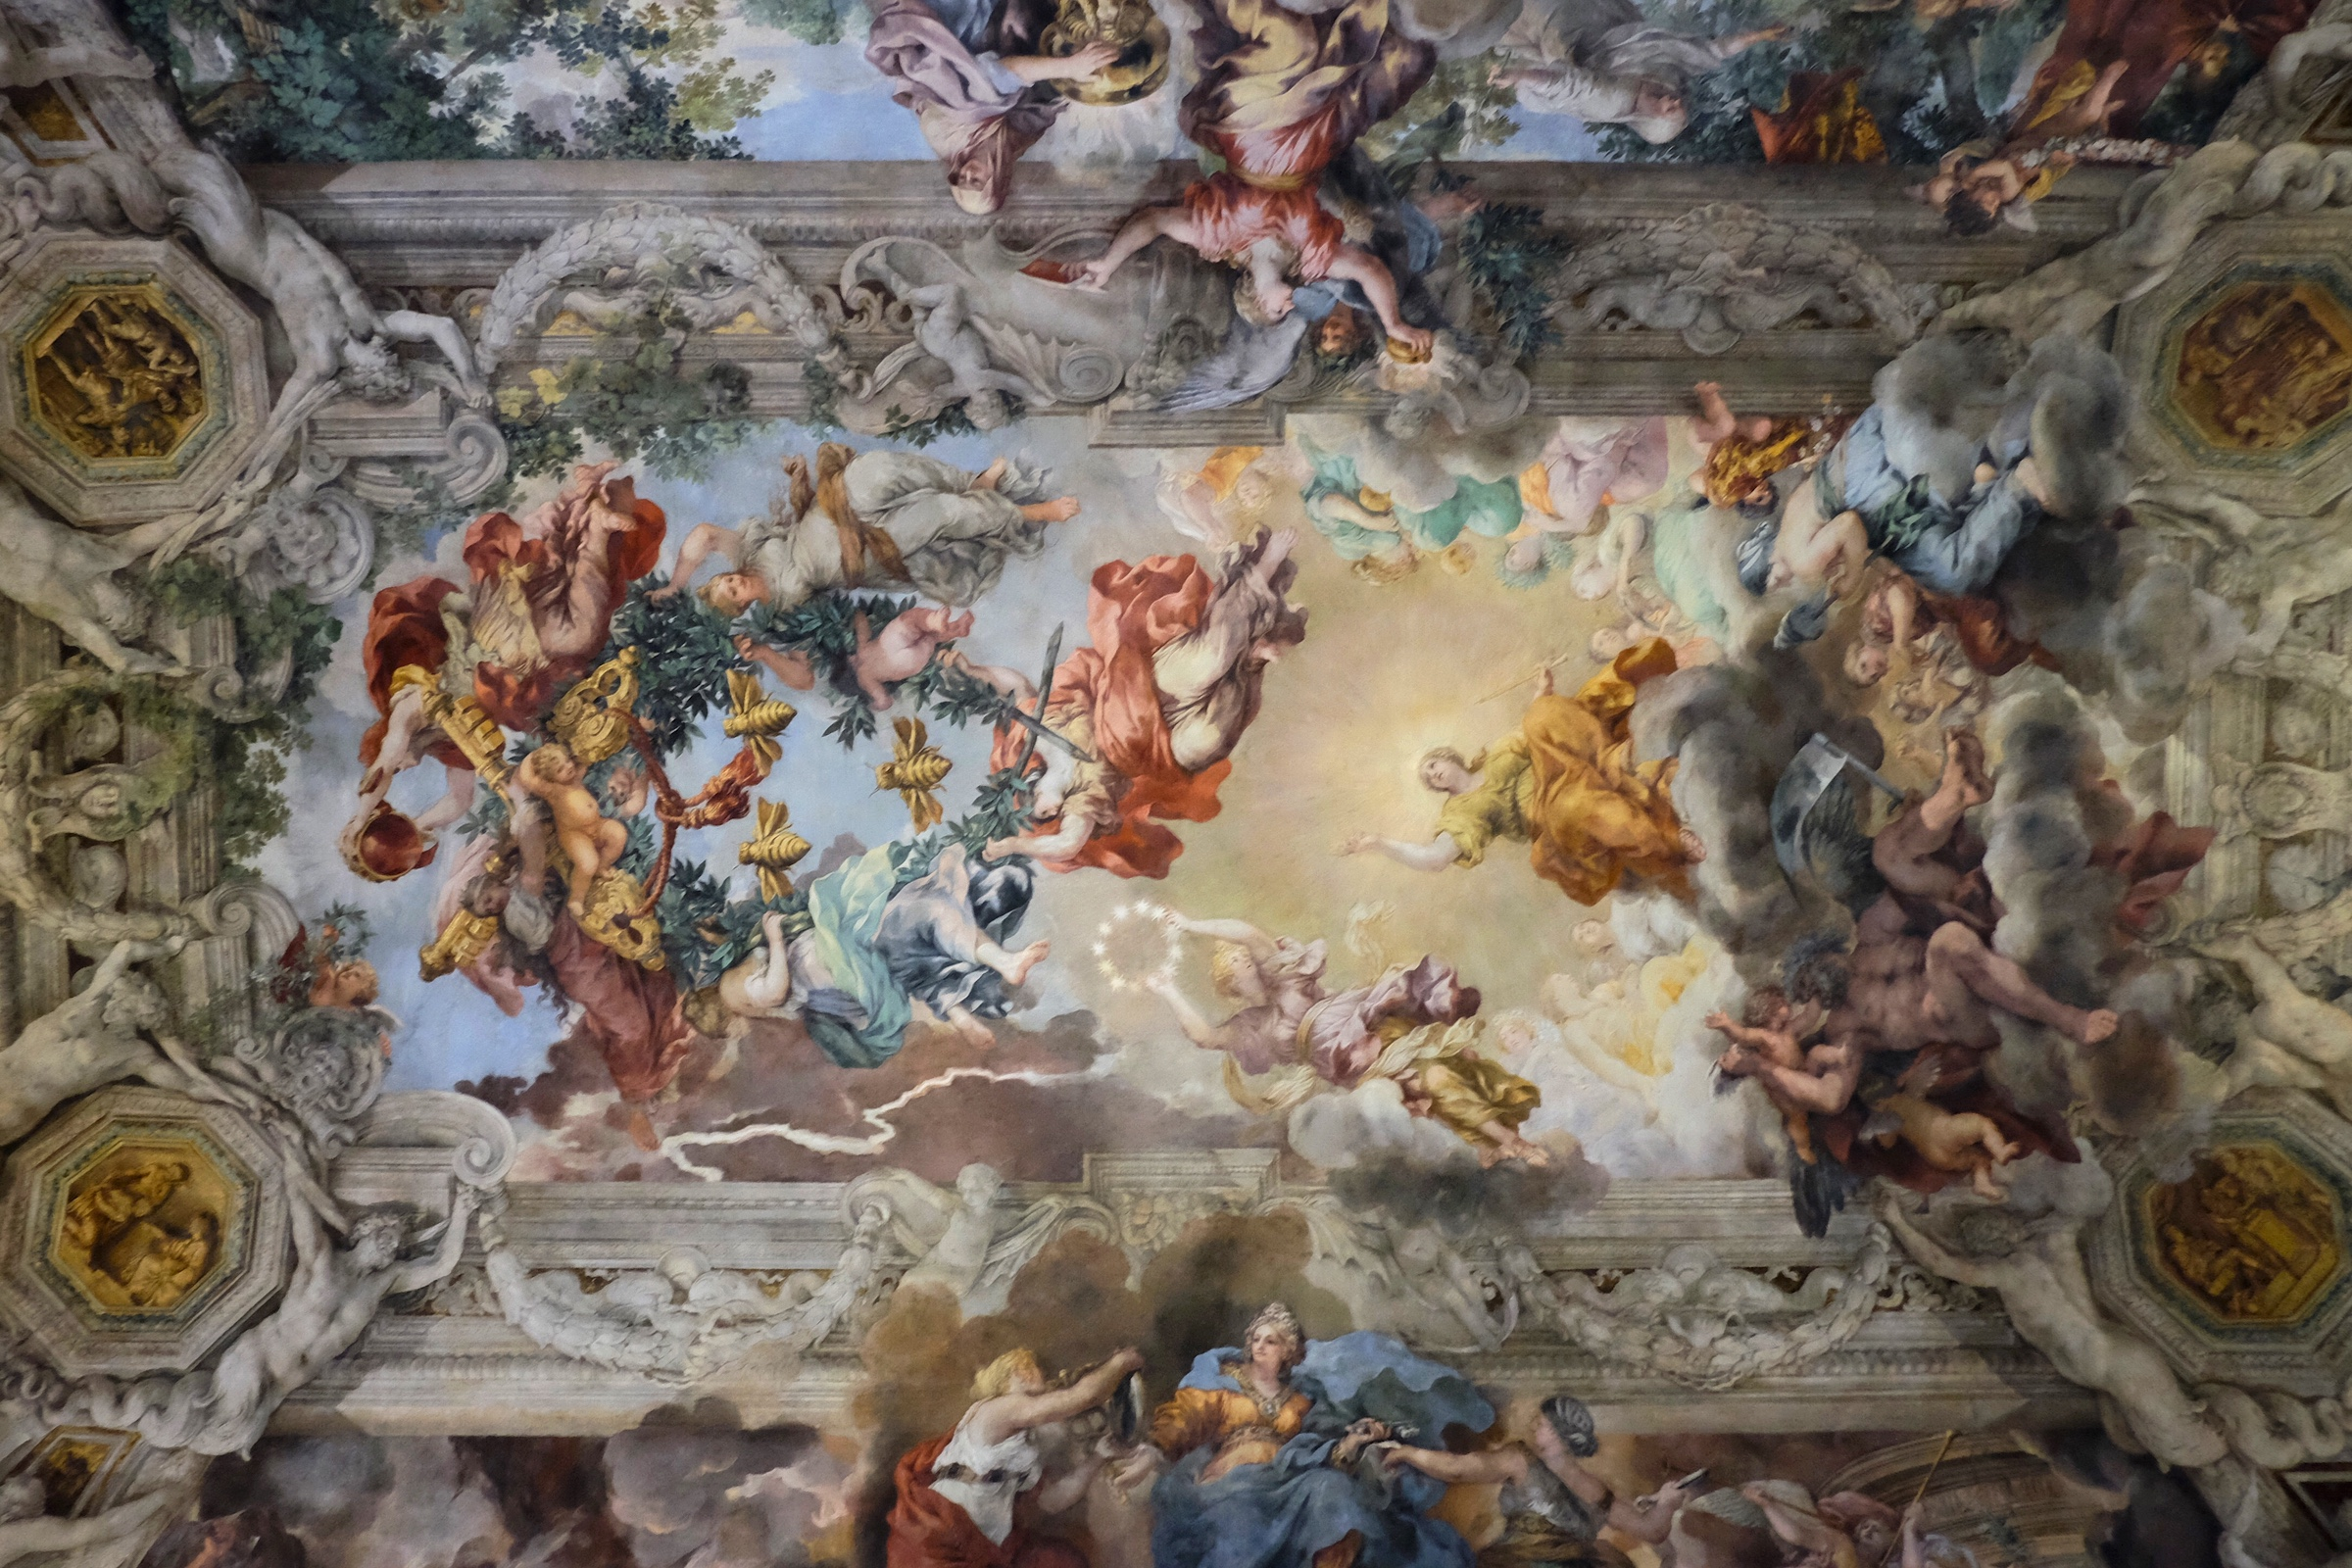 One of many beautiful ceiling frescoes in Palazzo Barberini.